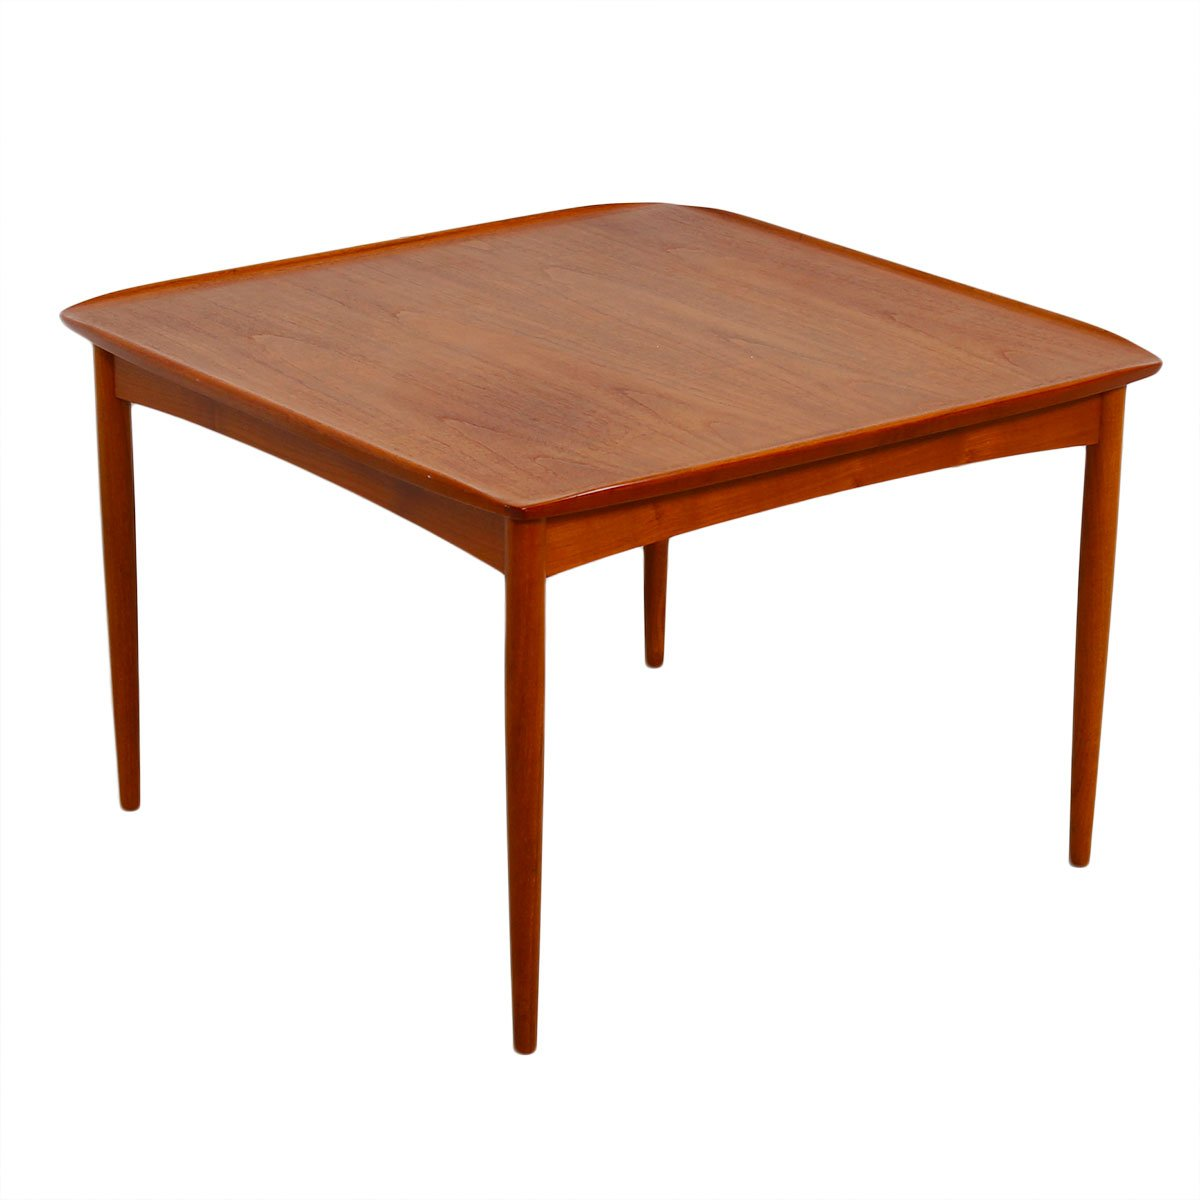 Raised Lip Edge Accent / End Table by Grete Jalk in Teak